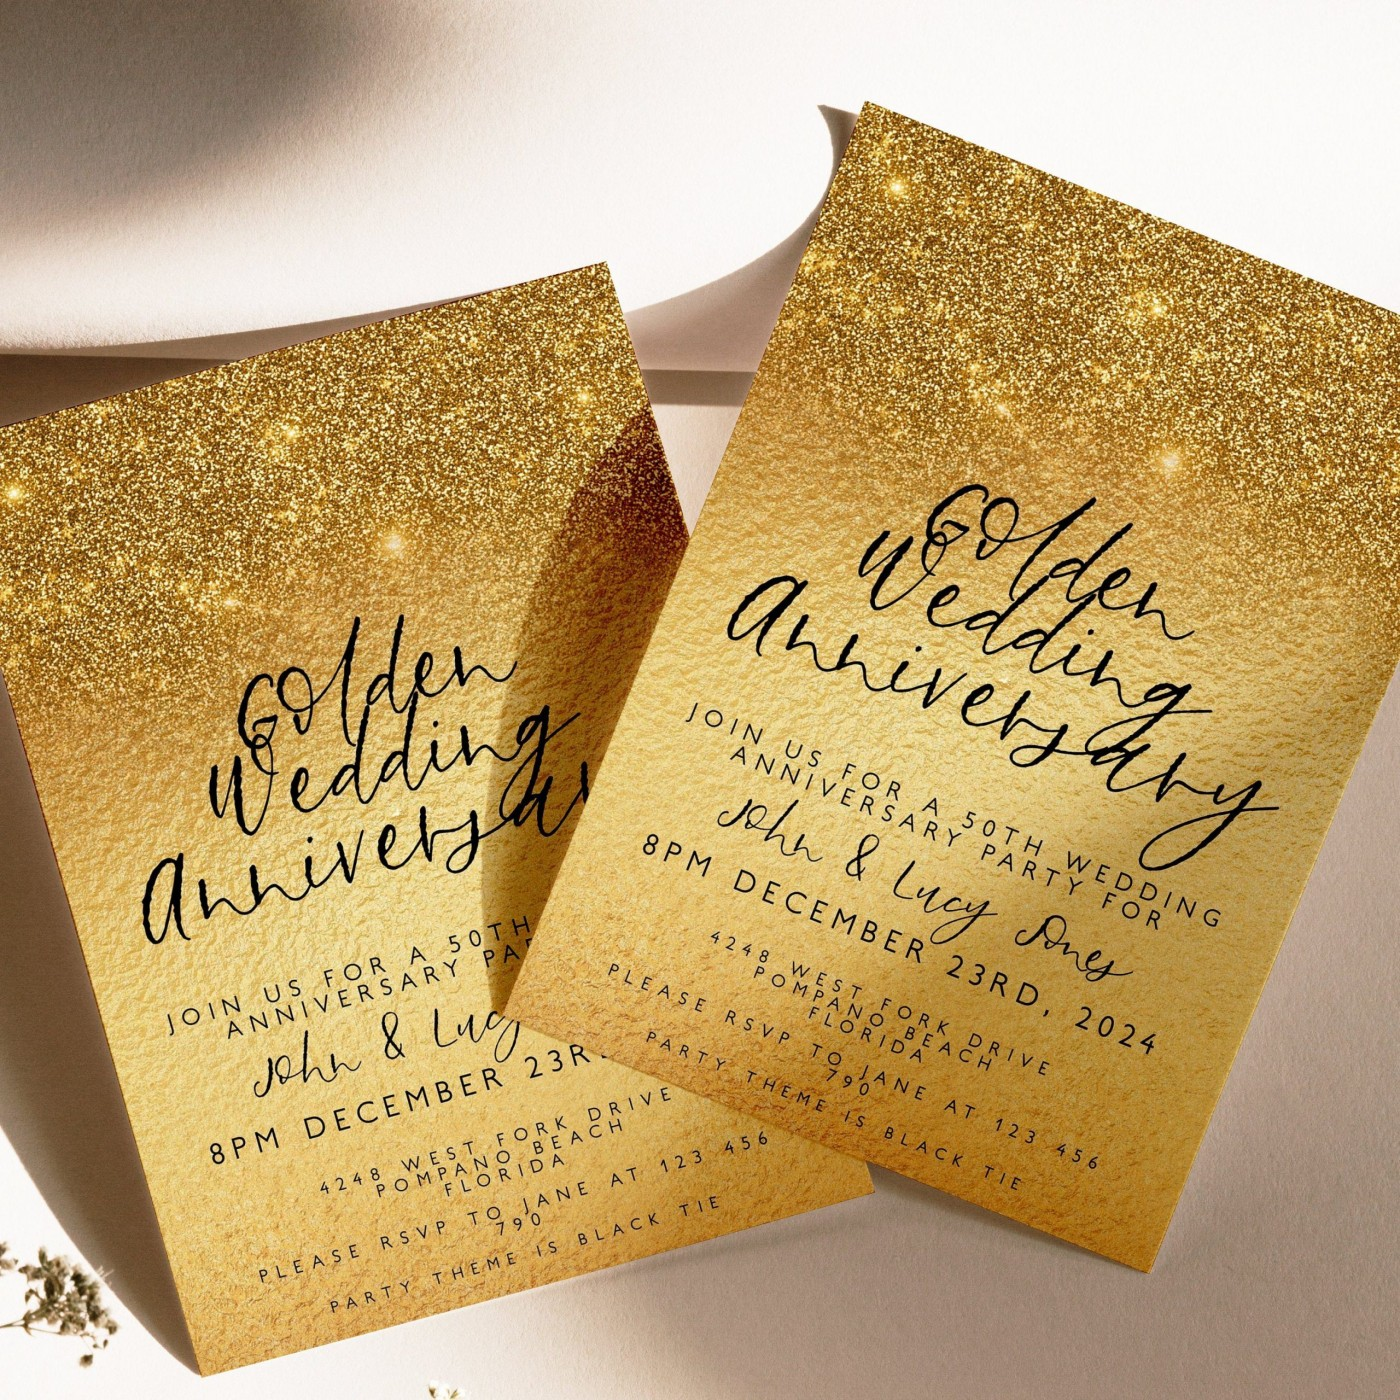 001 Excellent 50th Anniversary Invitation Template Image  Wedding Microsoft Word Free Download1400